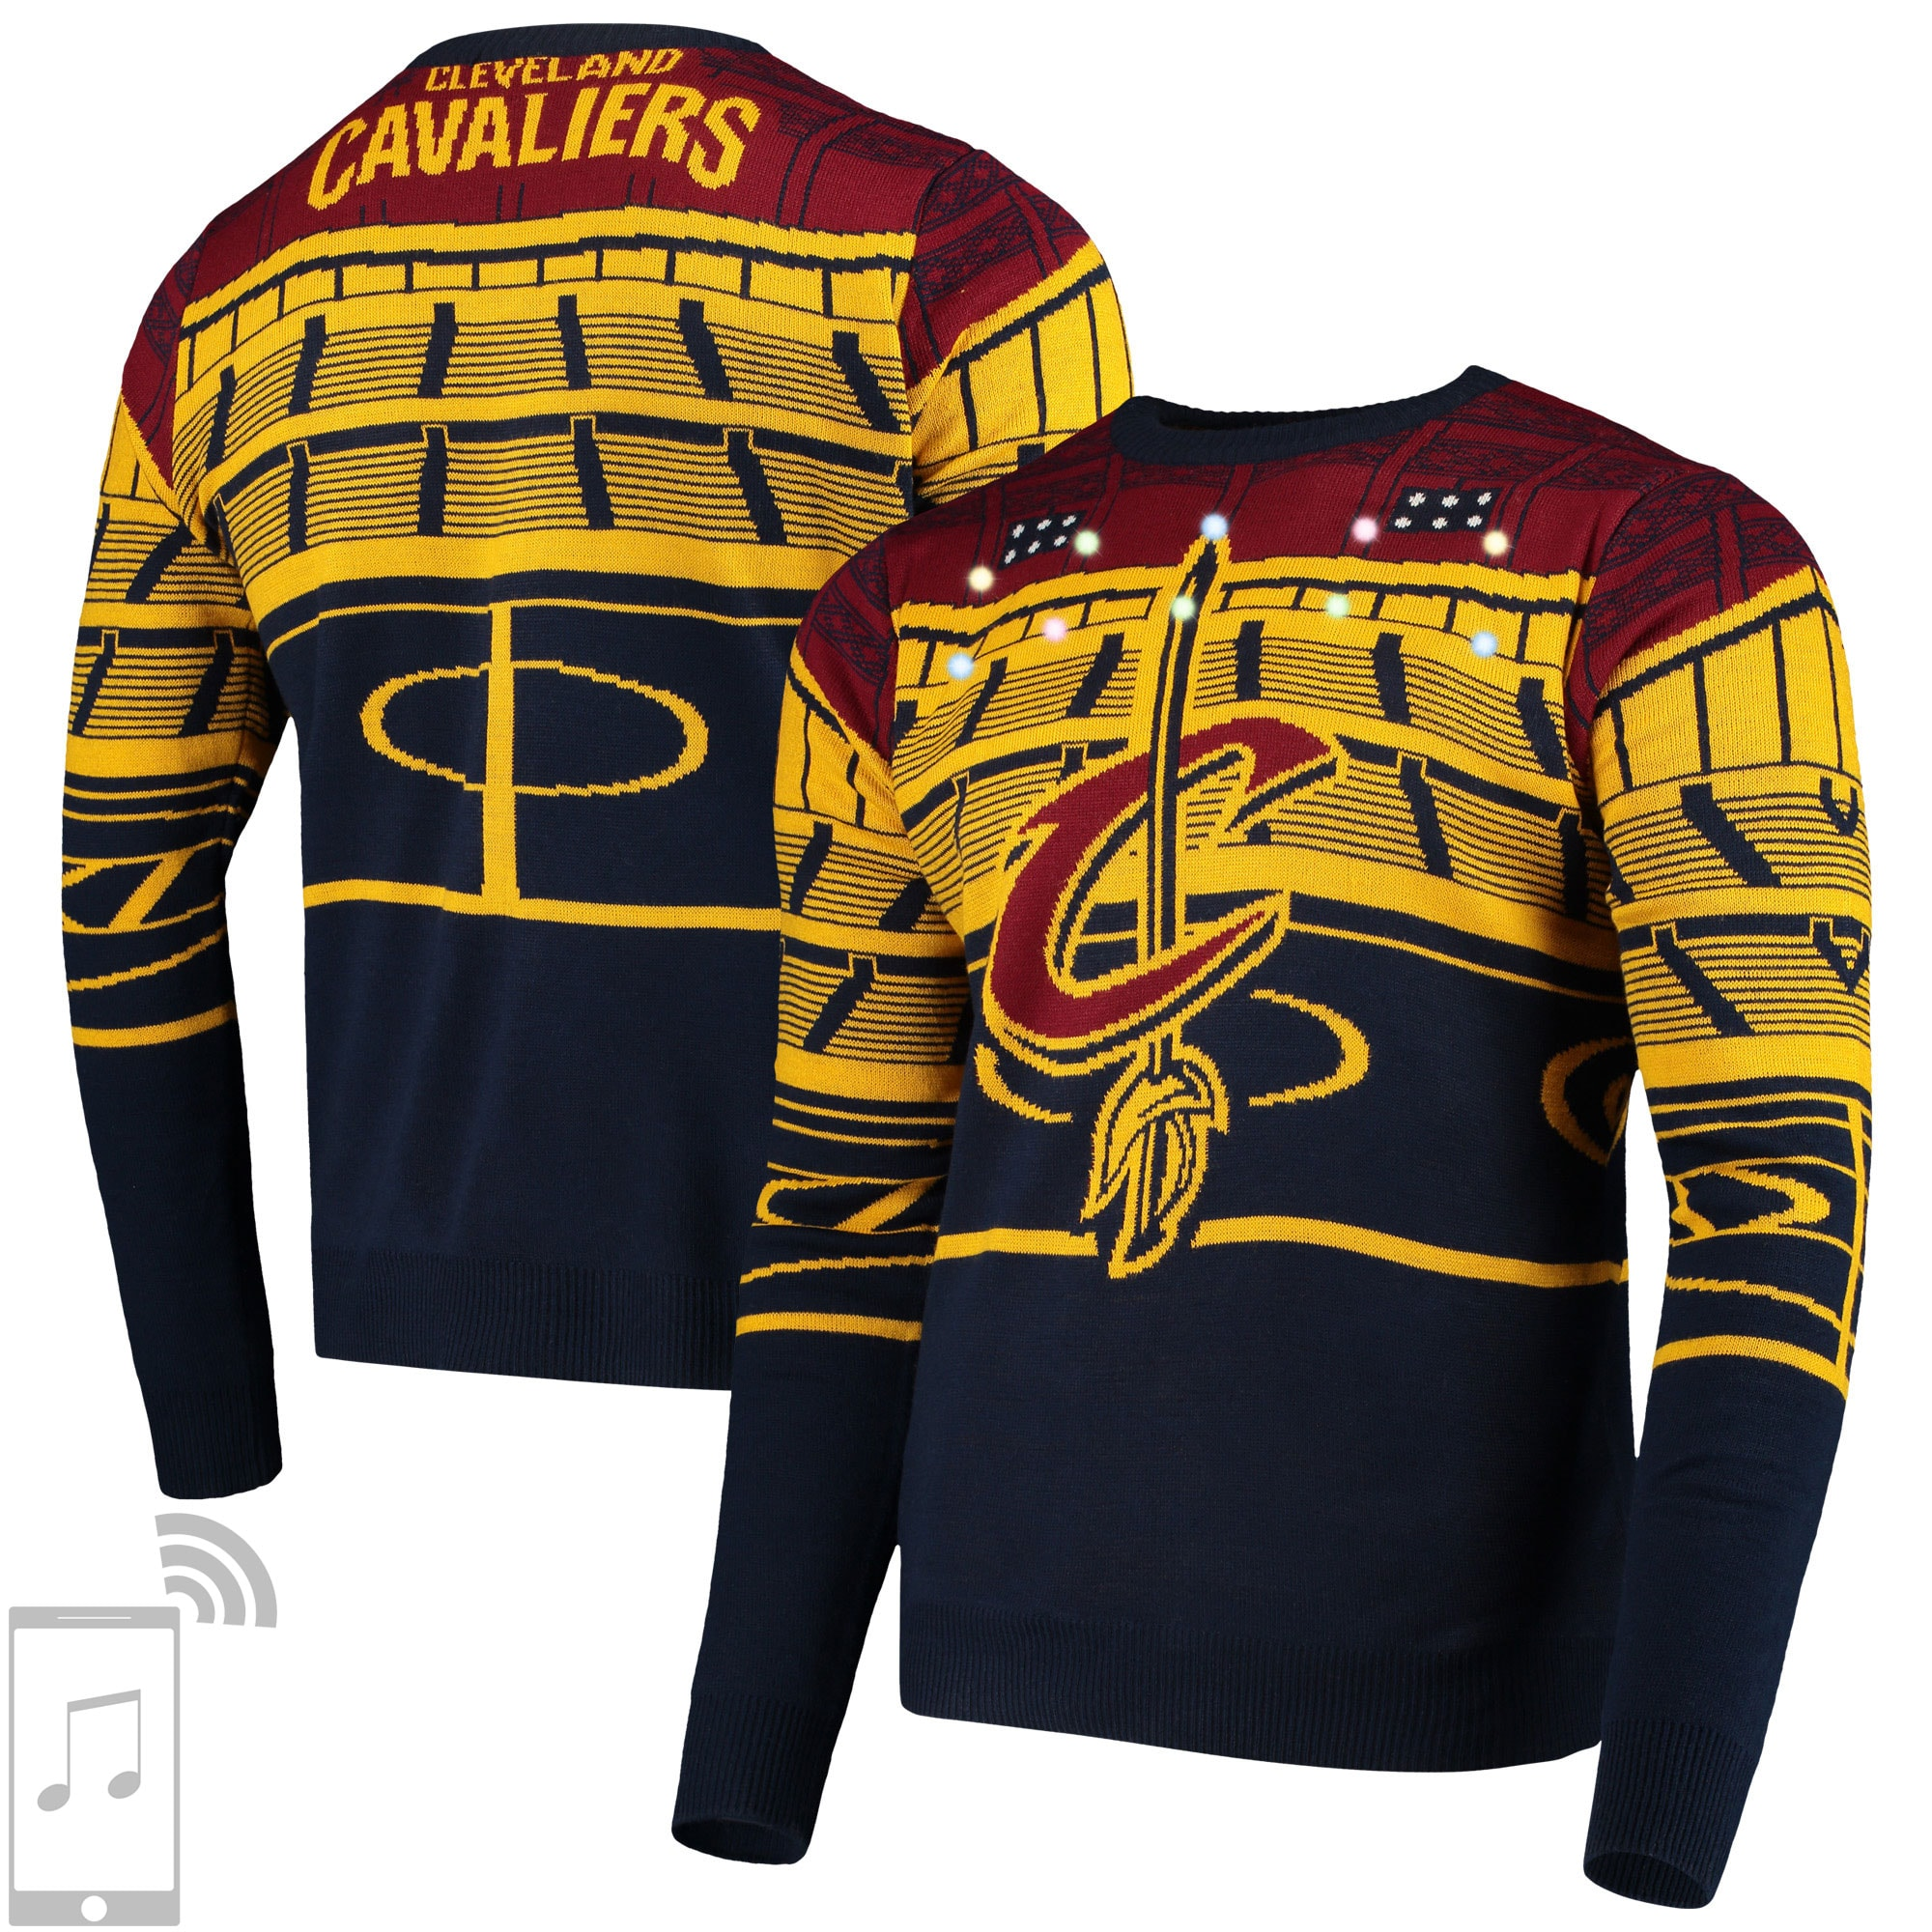 Cleveland Cavaliers Courtside Bluetooth-Enabled Light Up Ugly Sweater - Navy